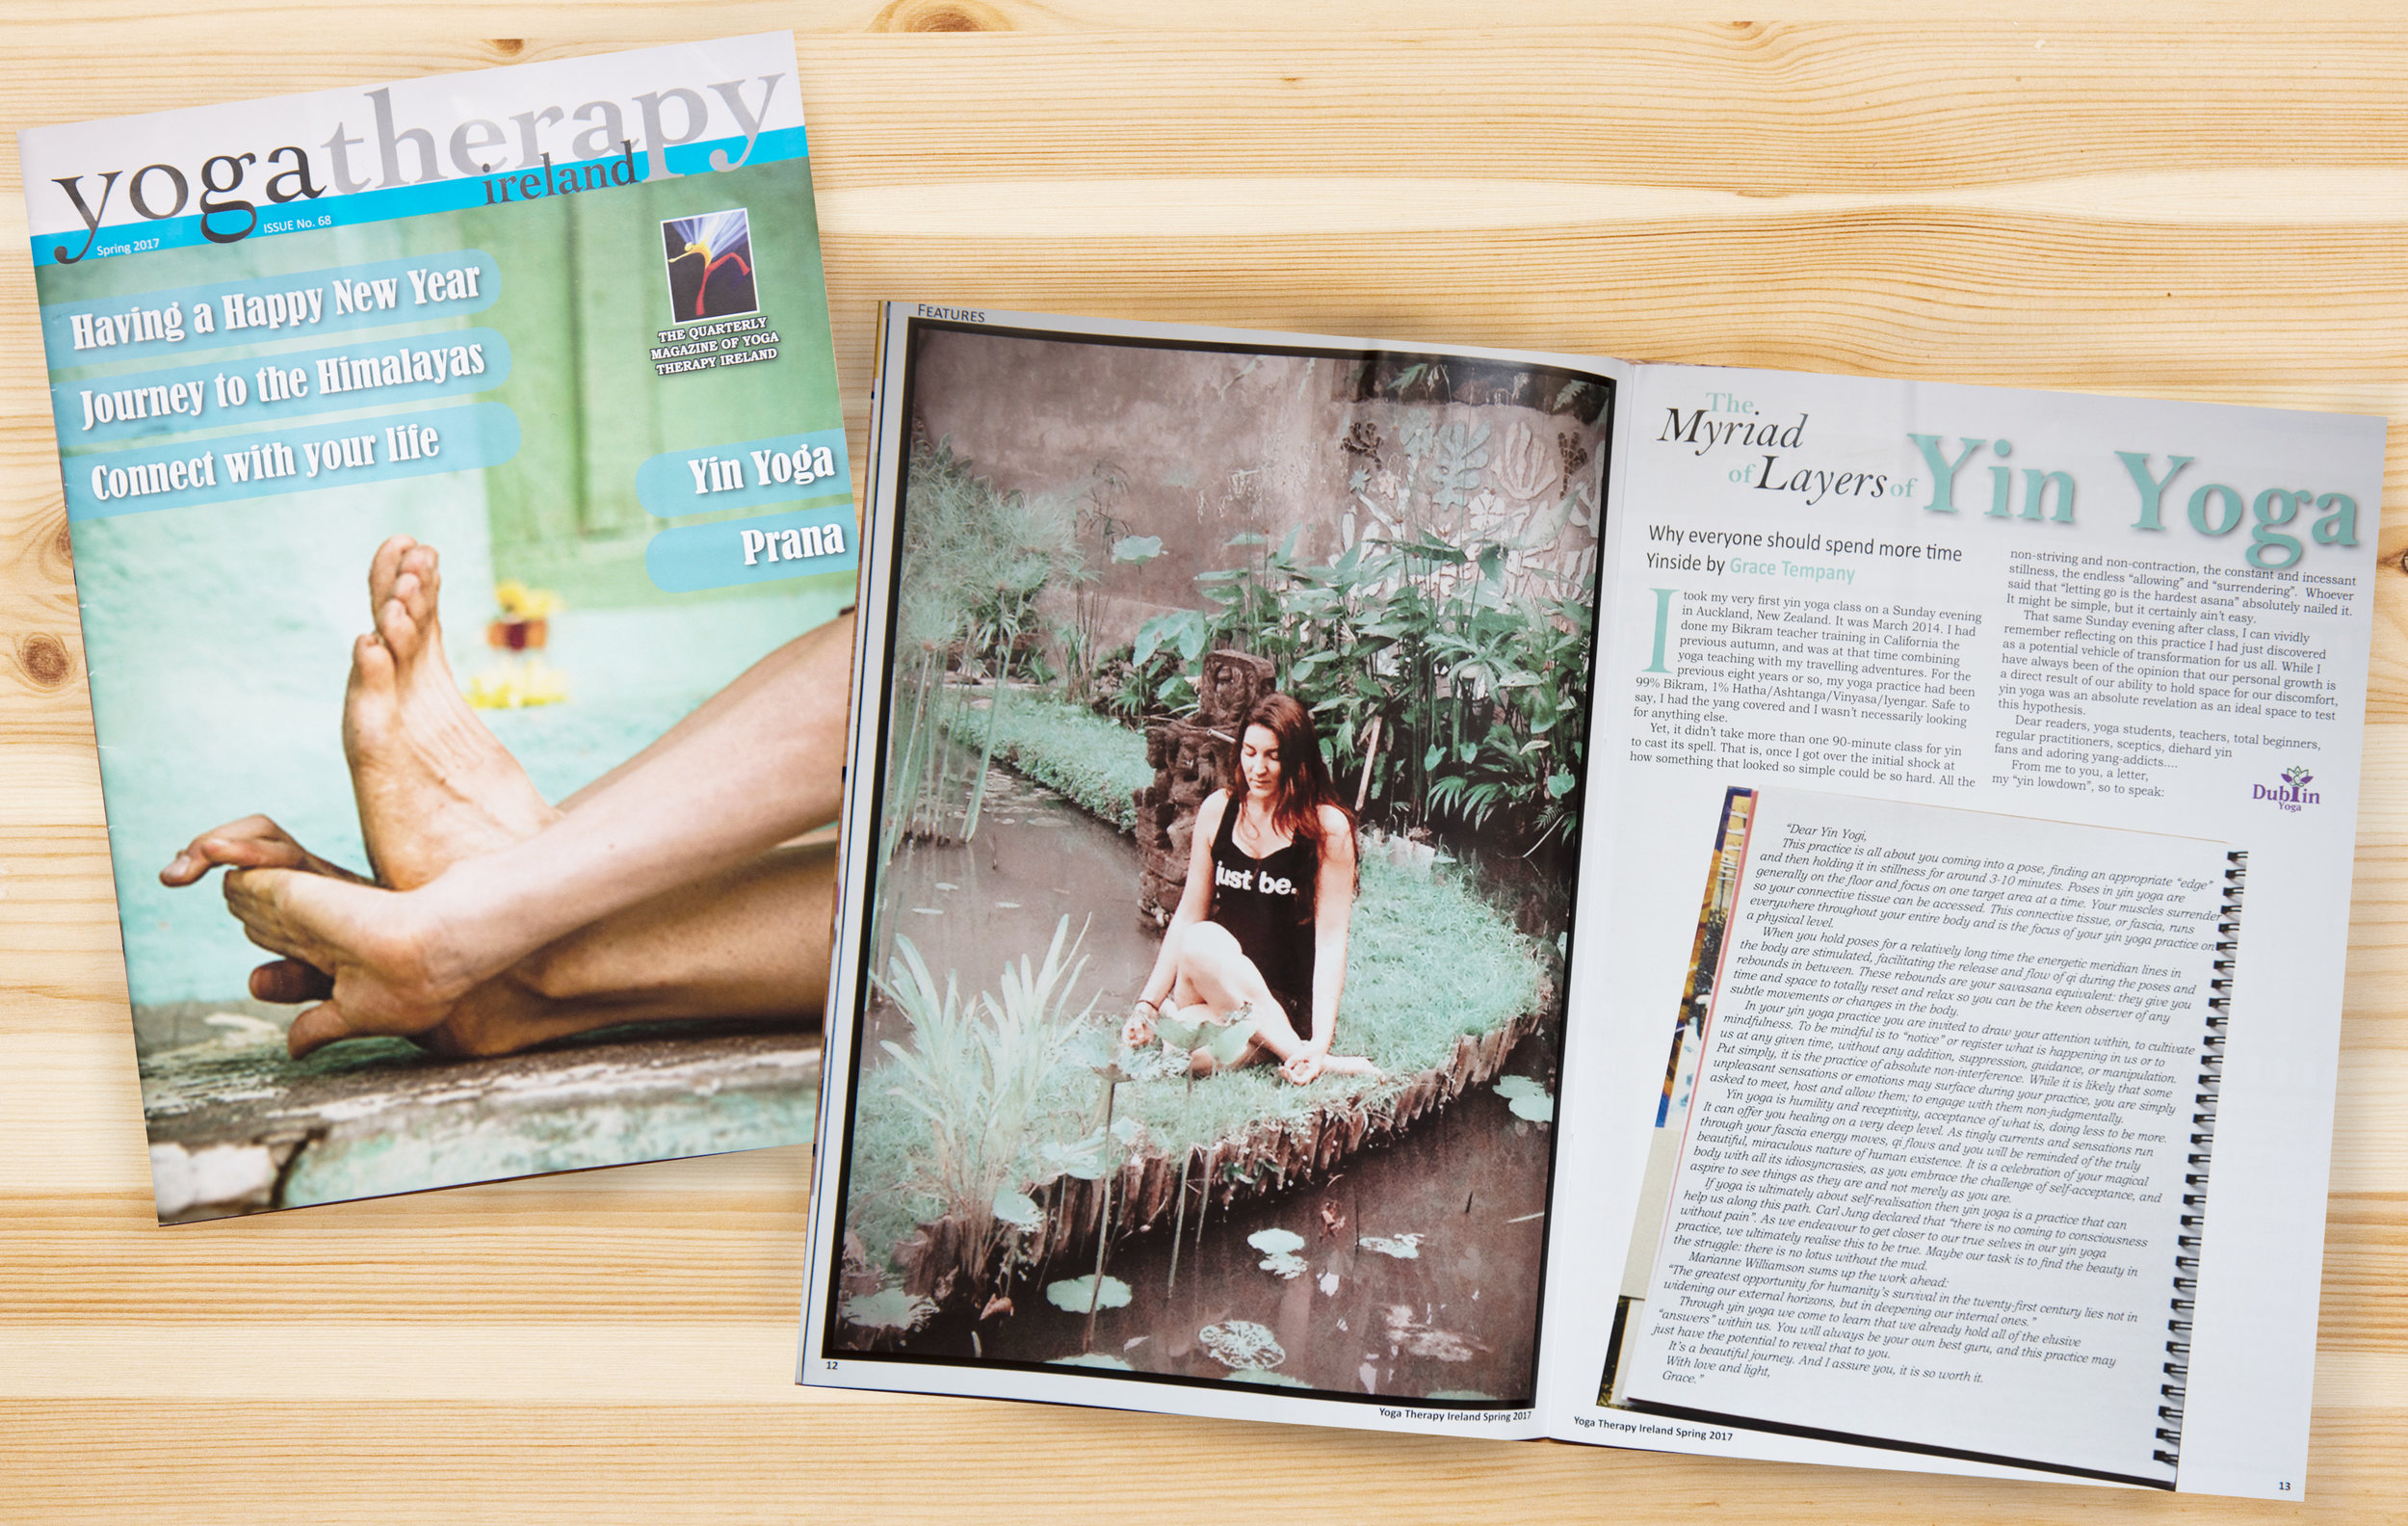 The Myriad Layers of Yin Yoga - Article in Yoga Therapy Magazine